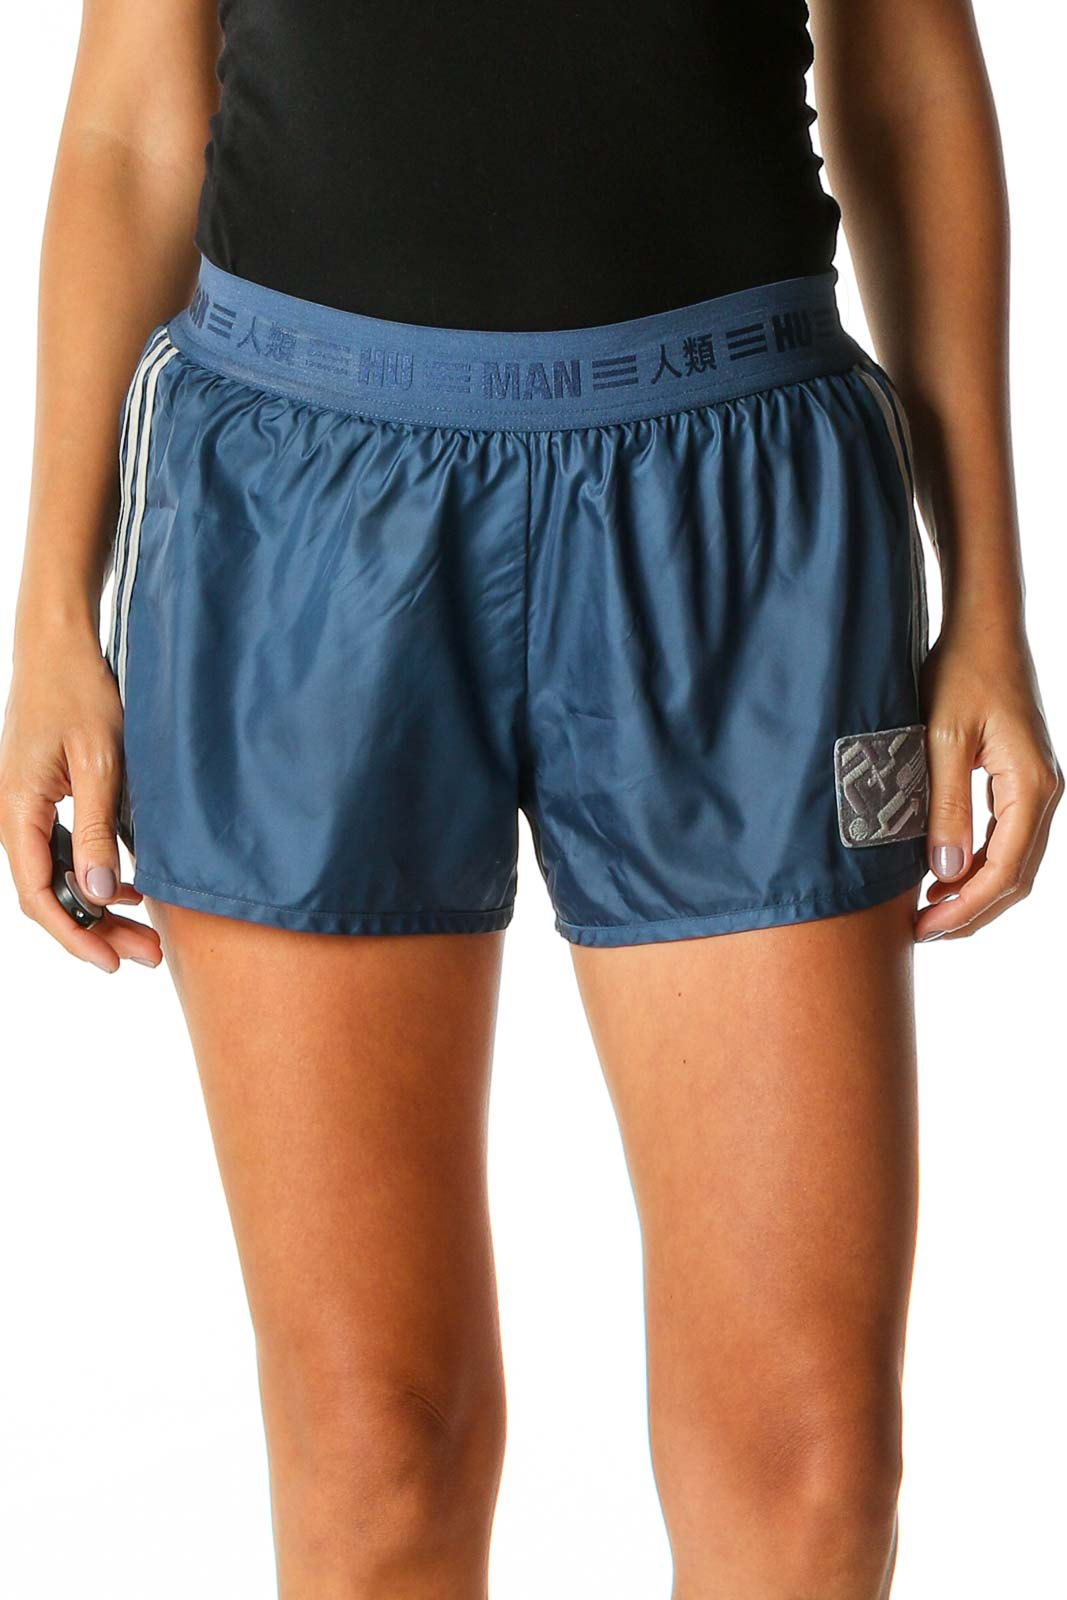 Blue Graphic Print Activewear Shorts Front